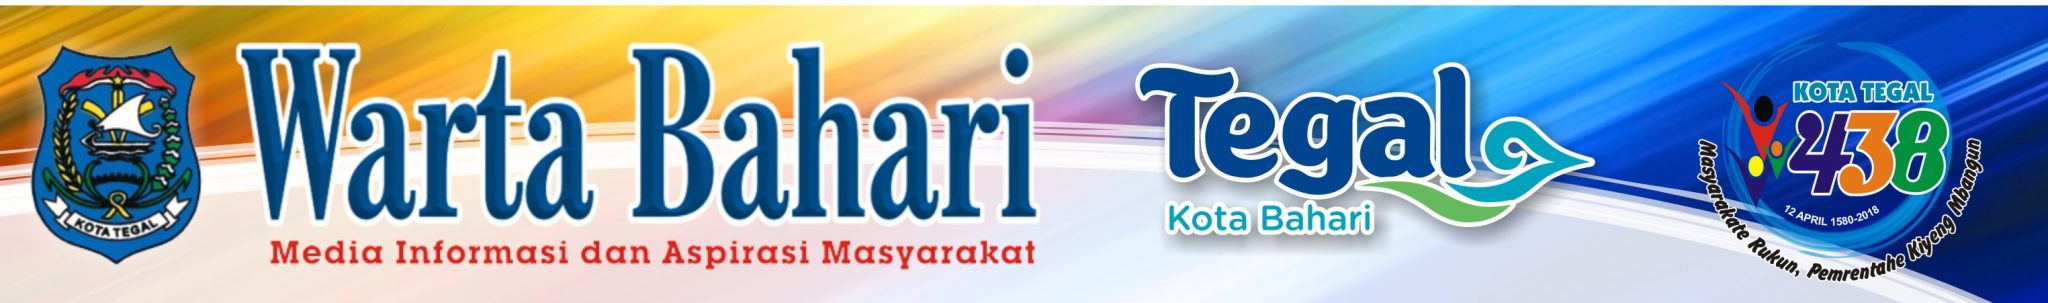 "Aplikasi ""Smart City Tegal"" Harum di Tingkat Nasional"